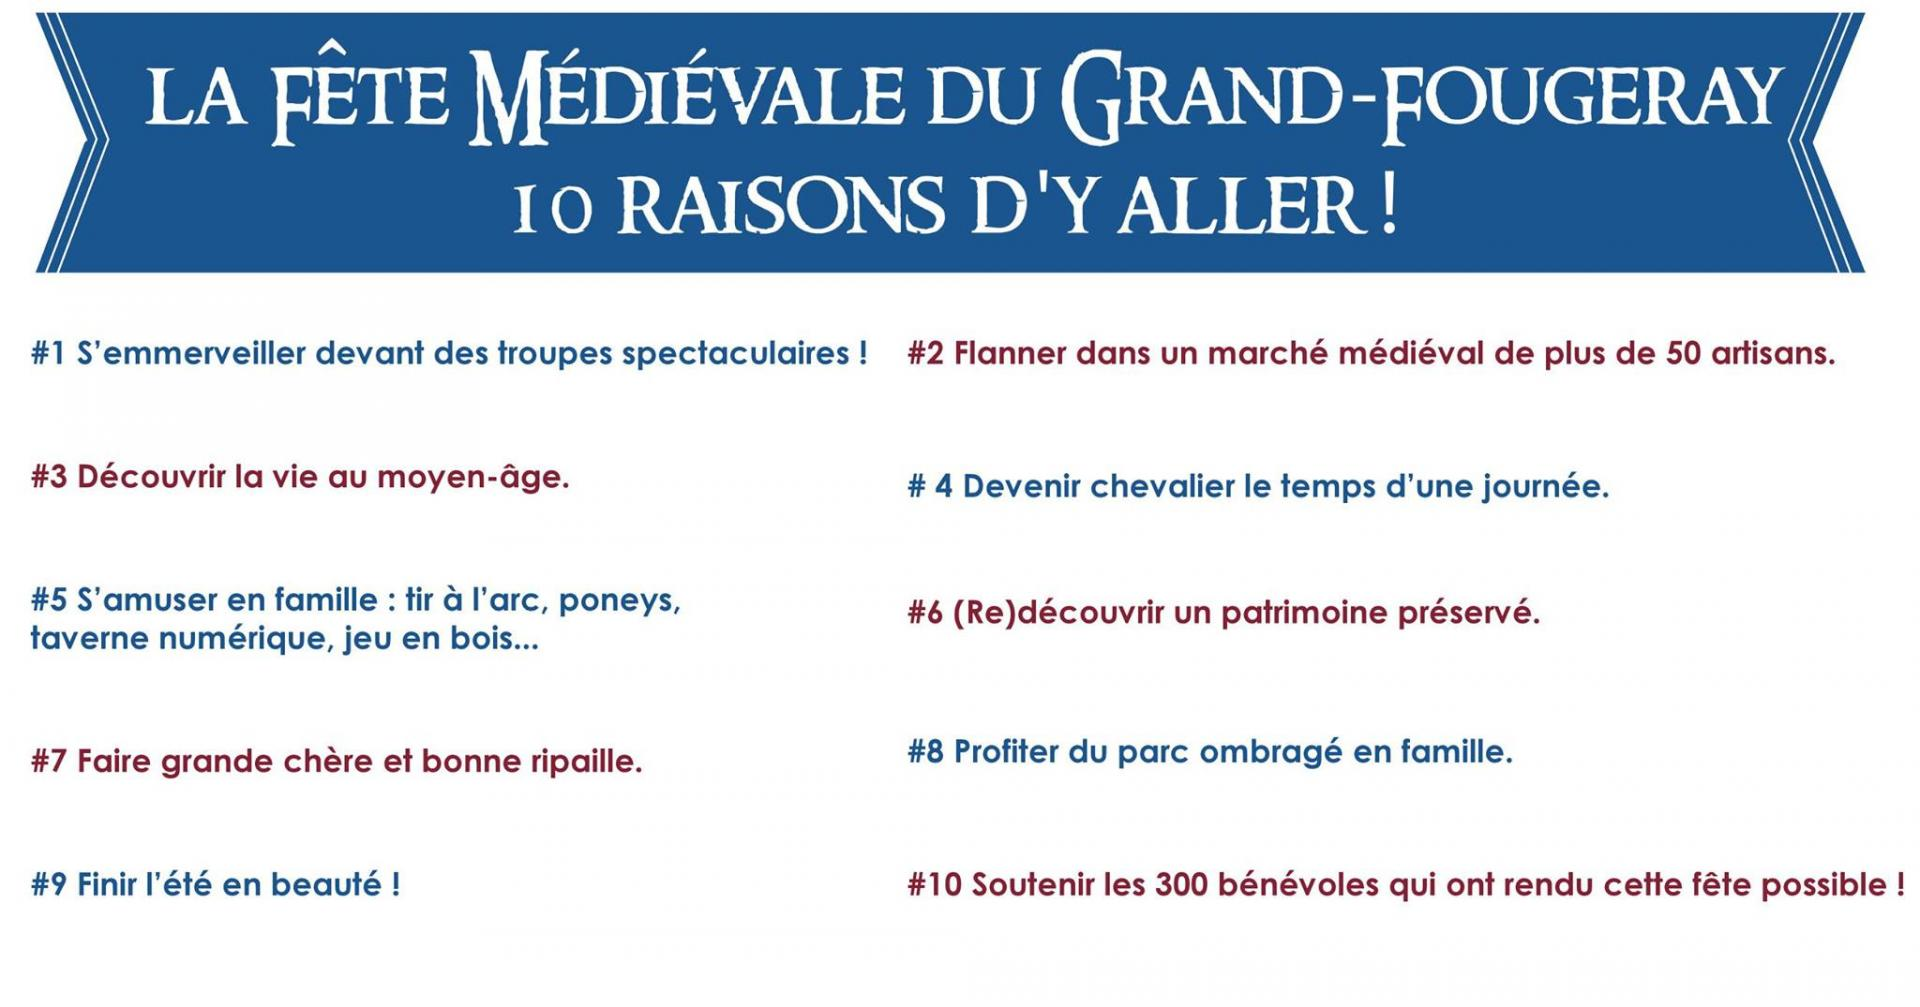 Fete medievale grand fougeray